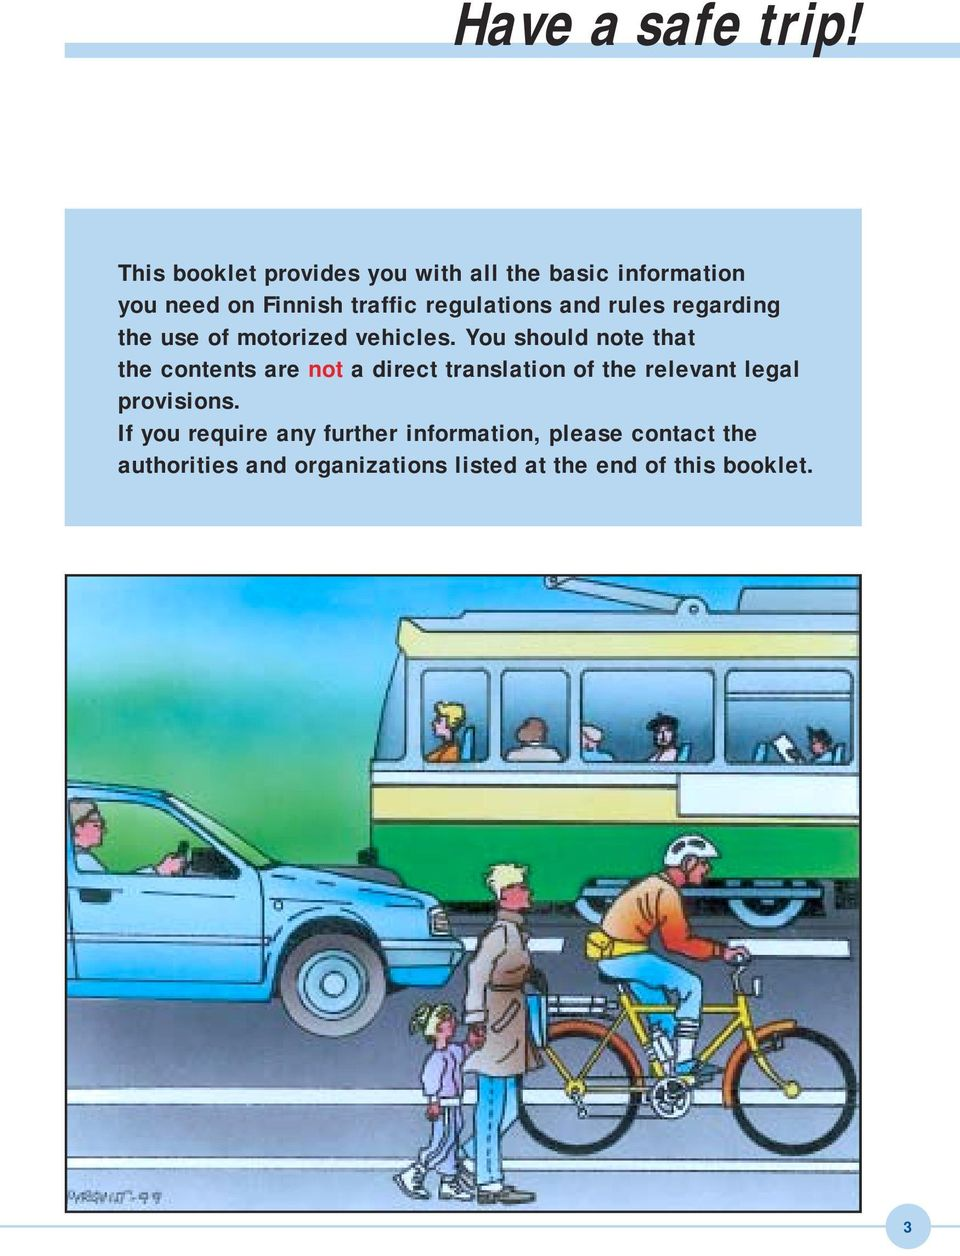 and rules regarding the use of motorized vehicles.